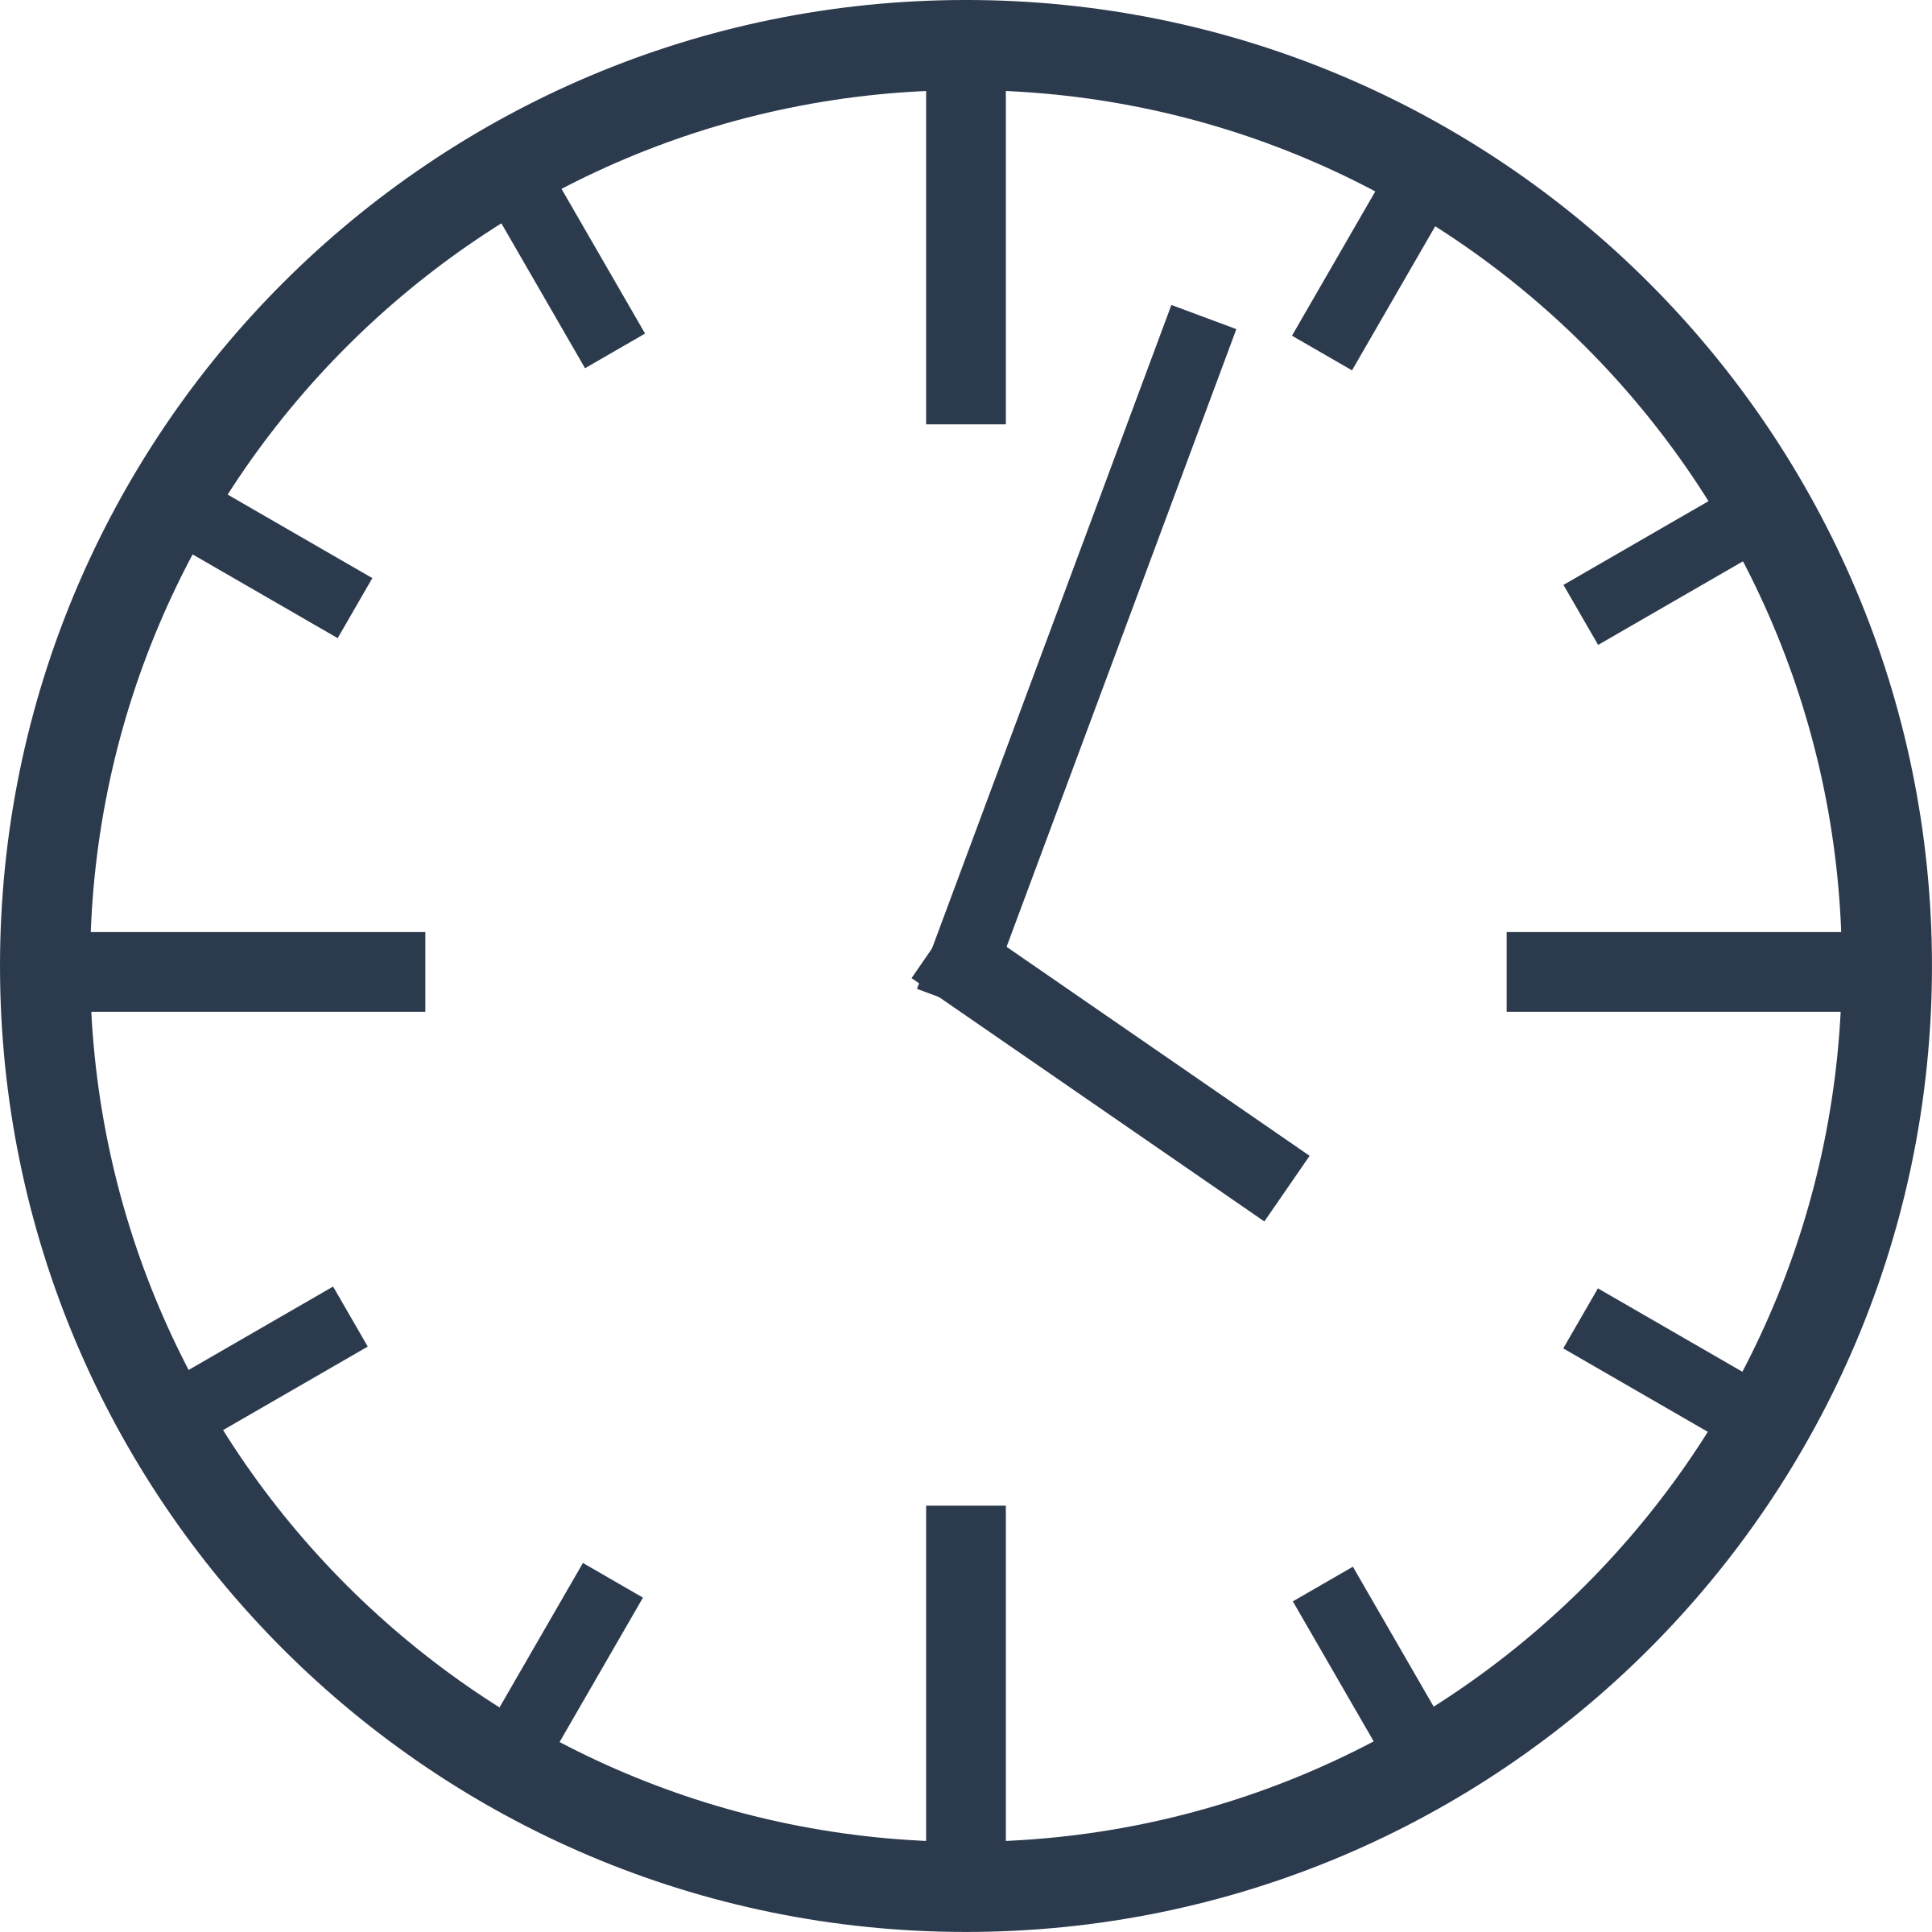 Time clipart png. Simple clock big image